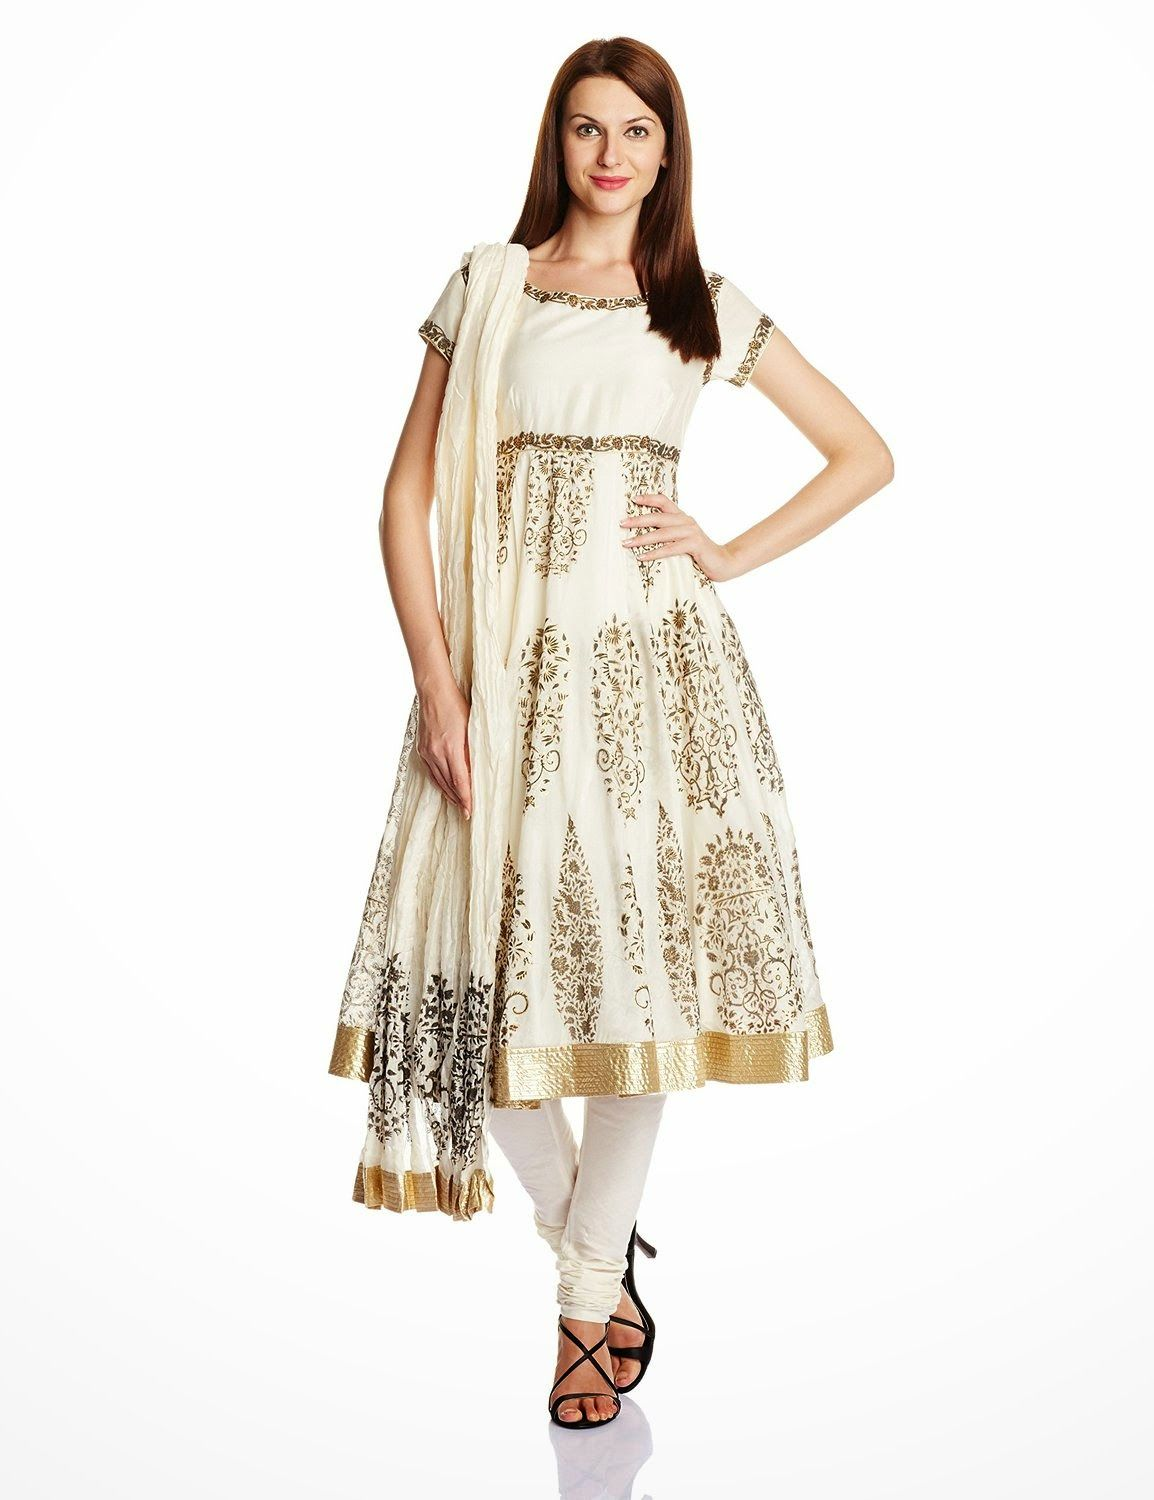 440c562e22a2 Biba By Rohit Bal Women's Cotton Silk Anarkali Salwar Suit Anarkali Dress,  Anarkali Suits,